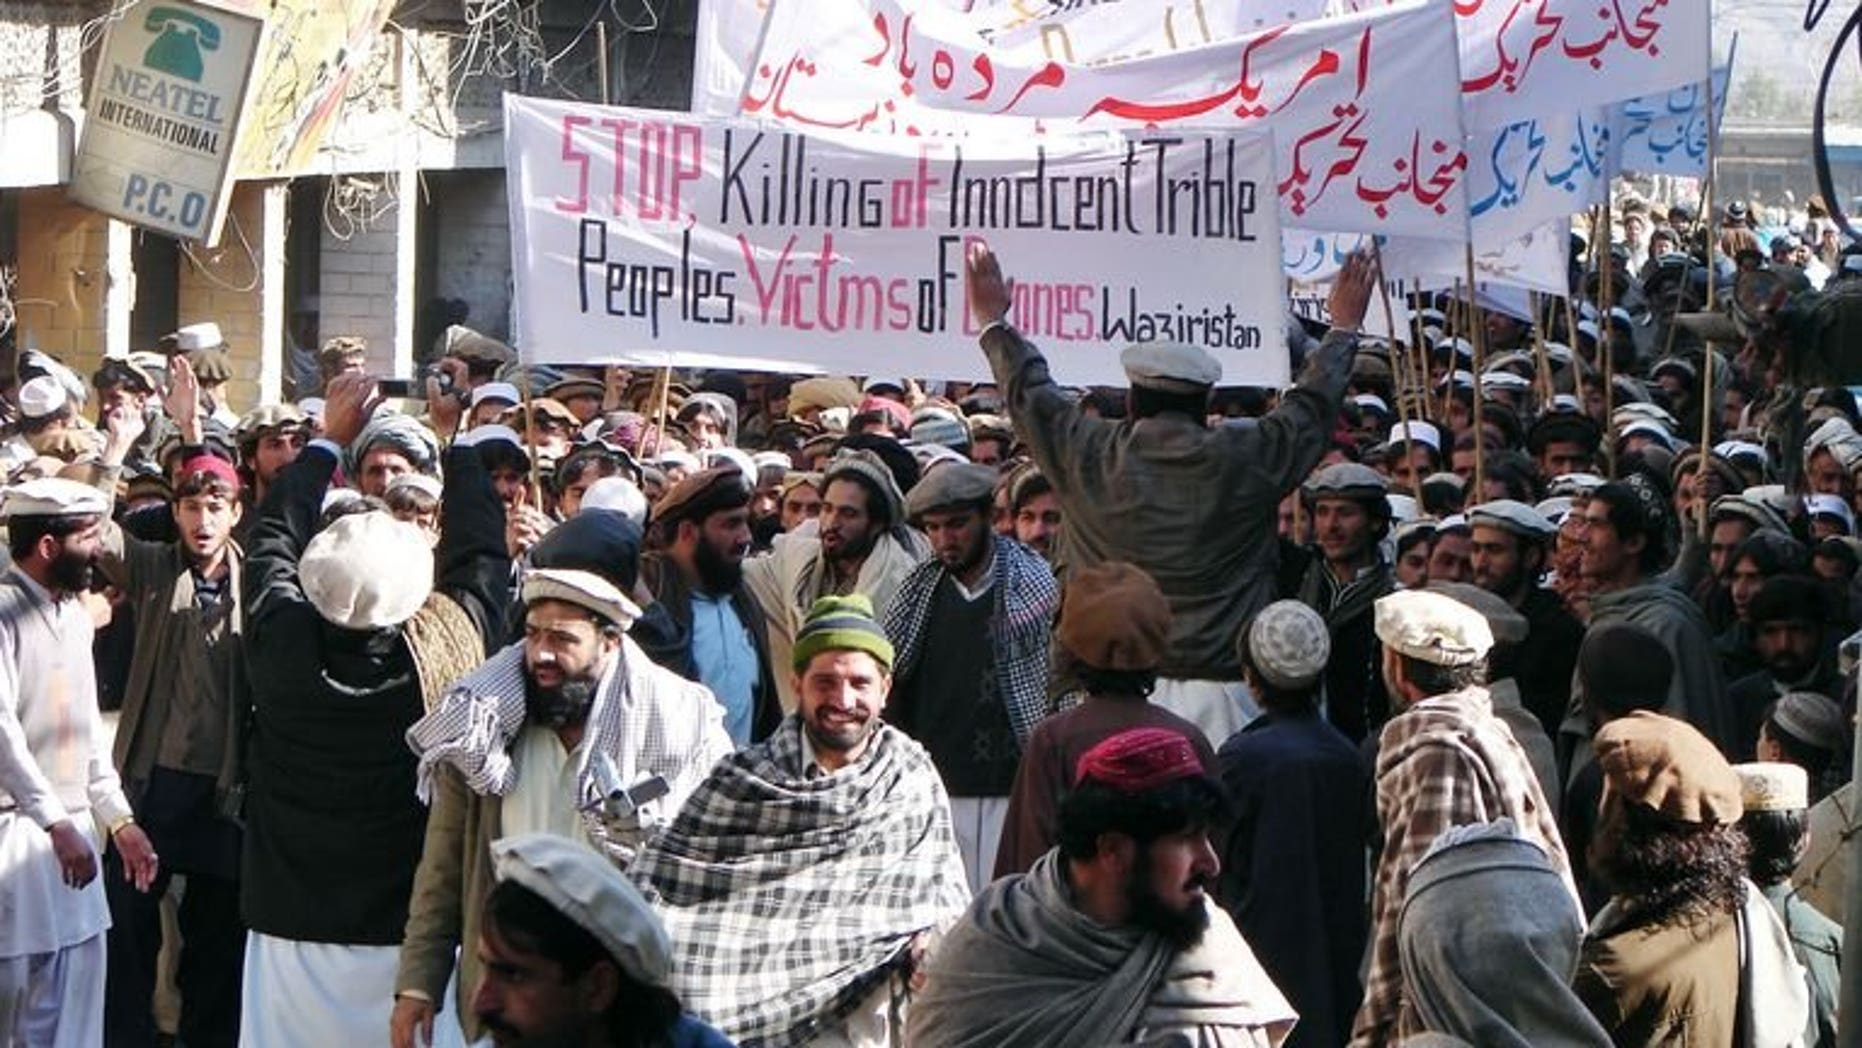 Pakistani tribesmen march during a protest rally against the US drone attacks, in Miranshah, the main town in North Waziristan district on January 21, 2011. A US drone strike early Wednesday killed four militants in the northwestern tribal area of Pakistan, local officials said.